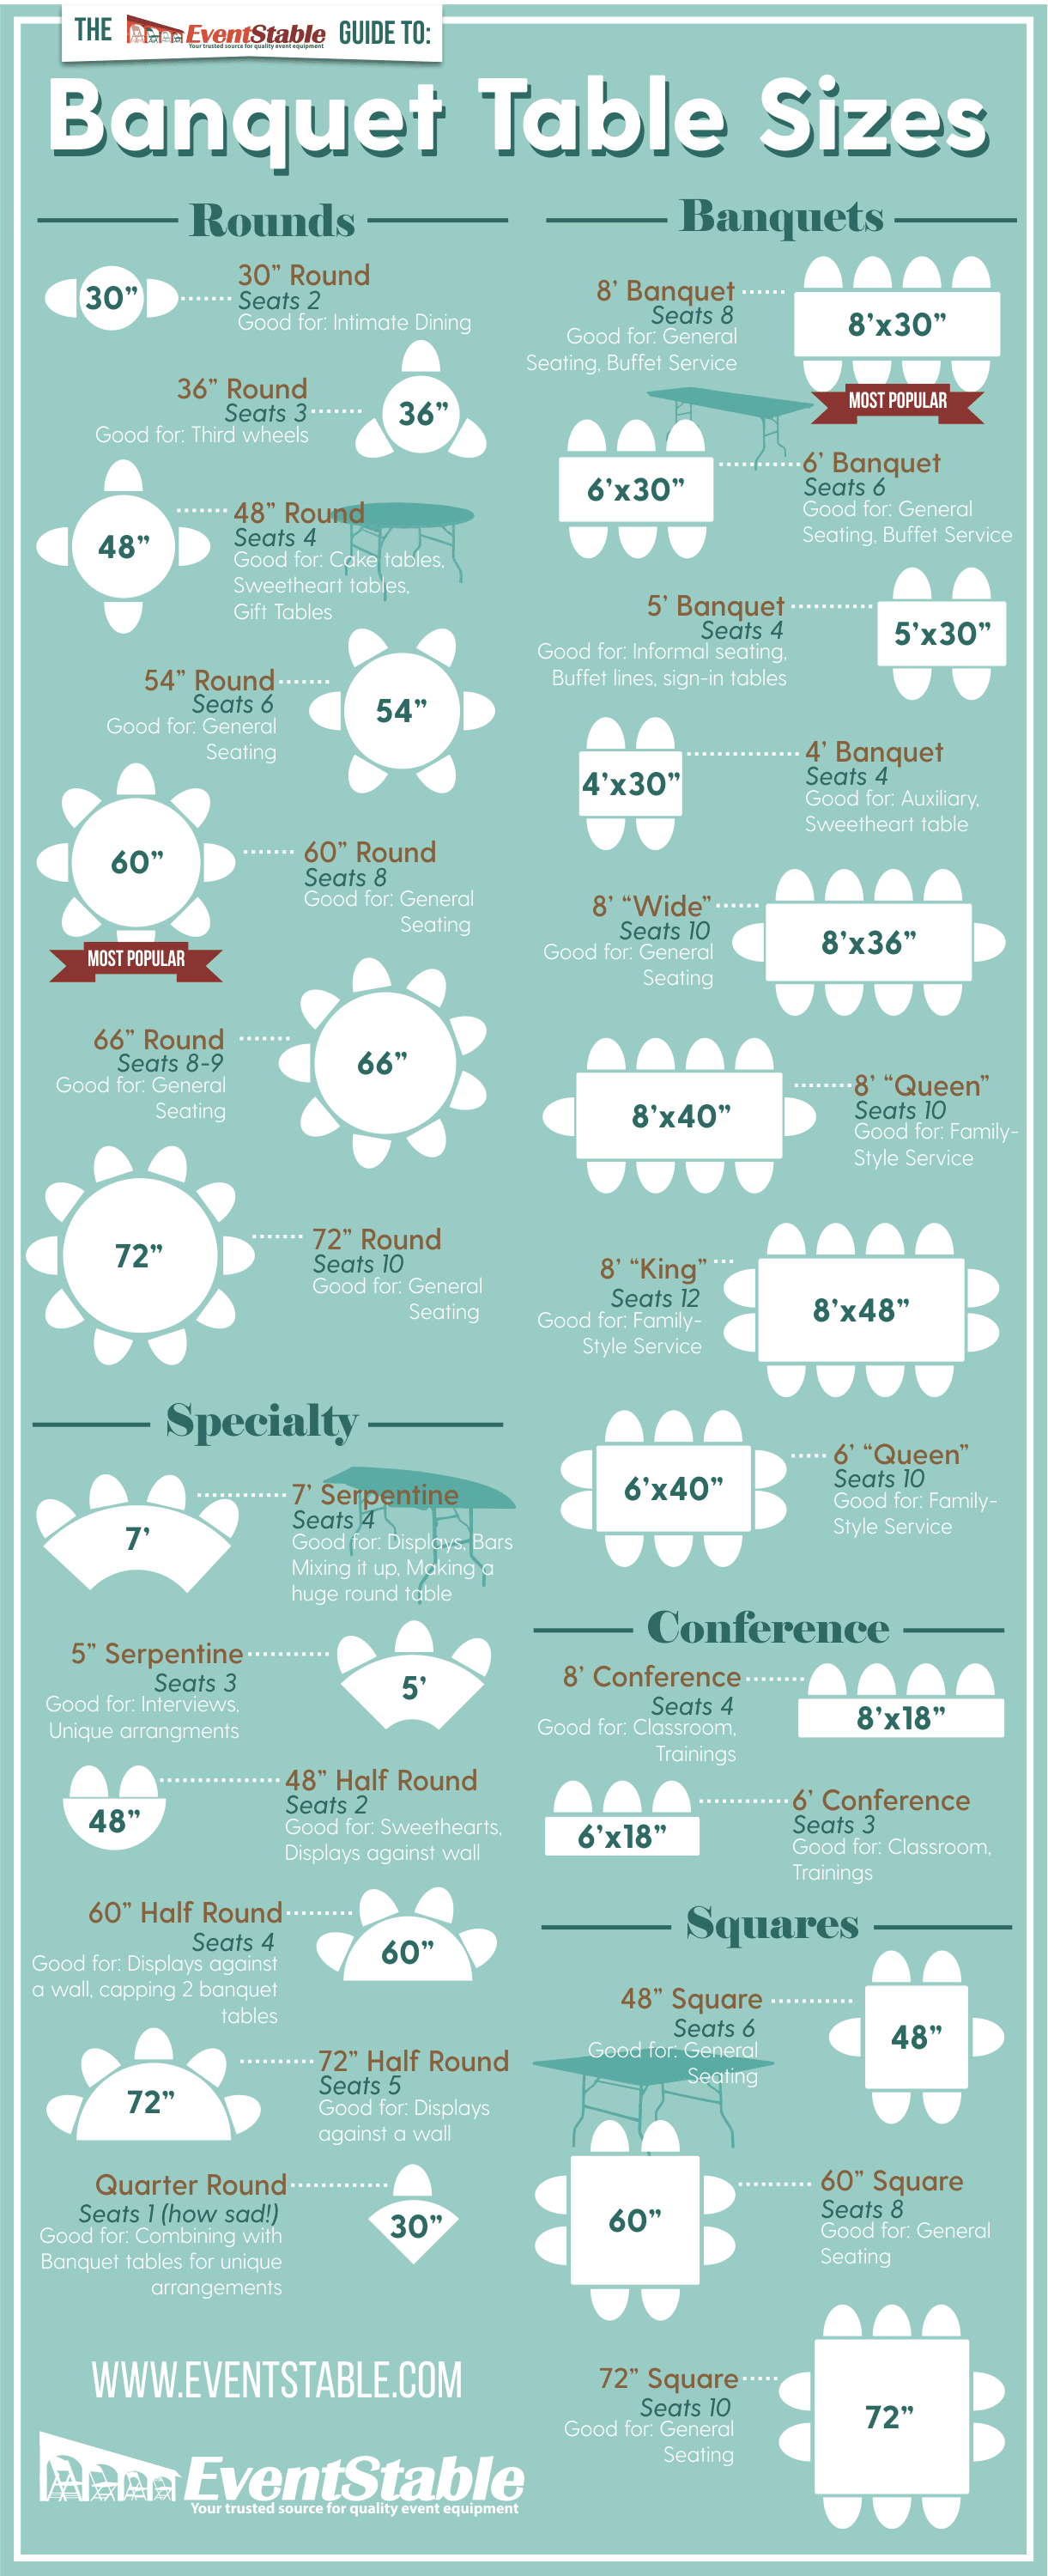 Guide to Banquet Table Sizes #infographic